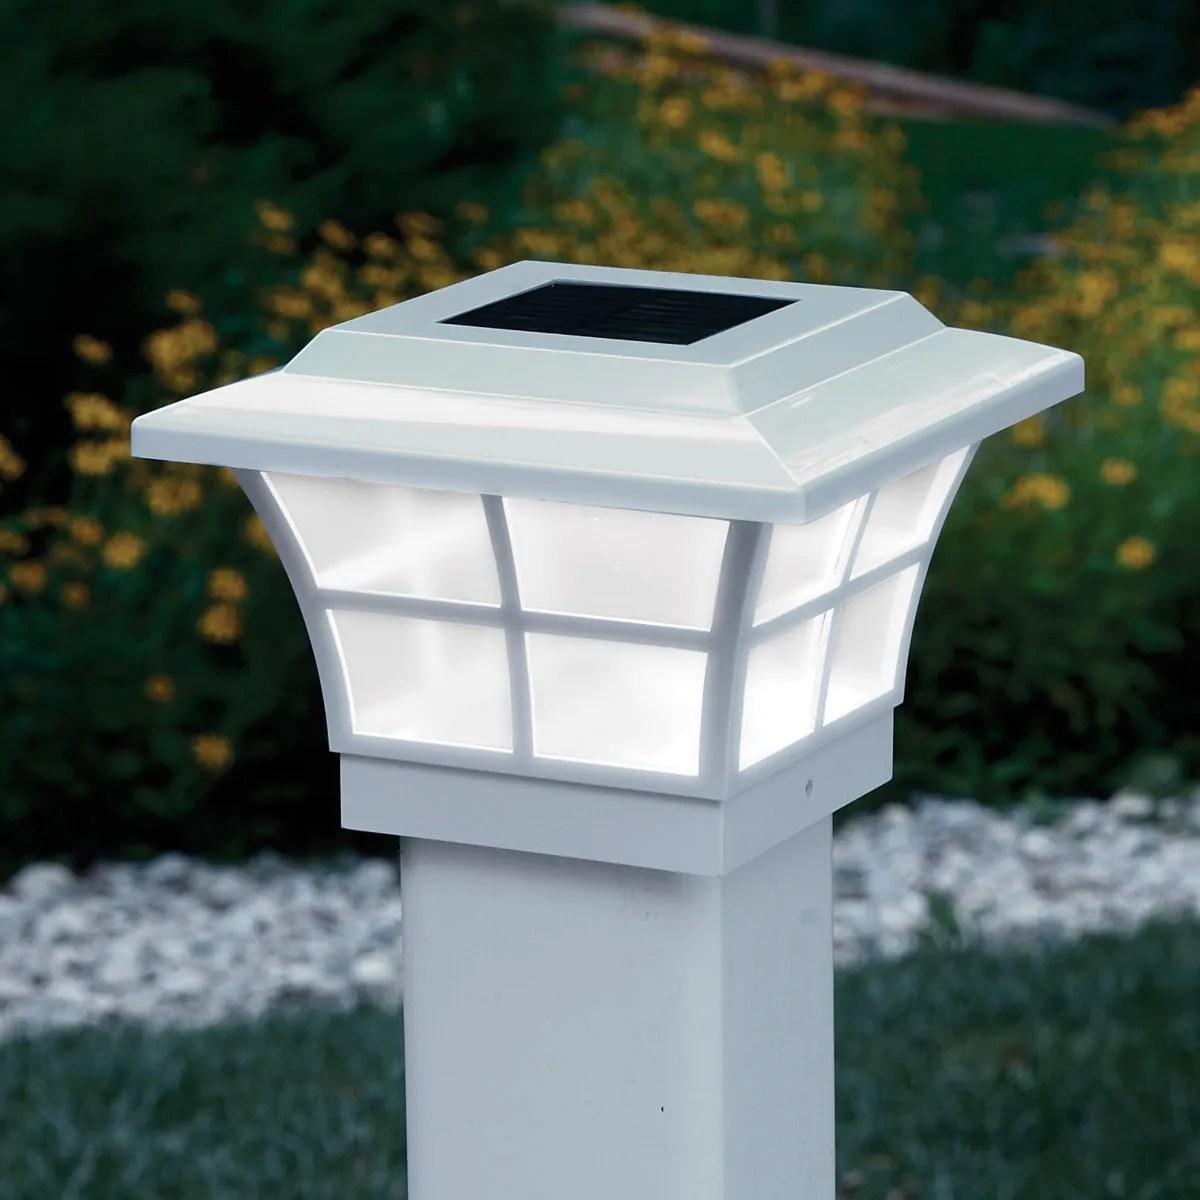 Unique Post Lights Prestige Solar Lighted Post Caps White From Sporty 39s